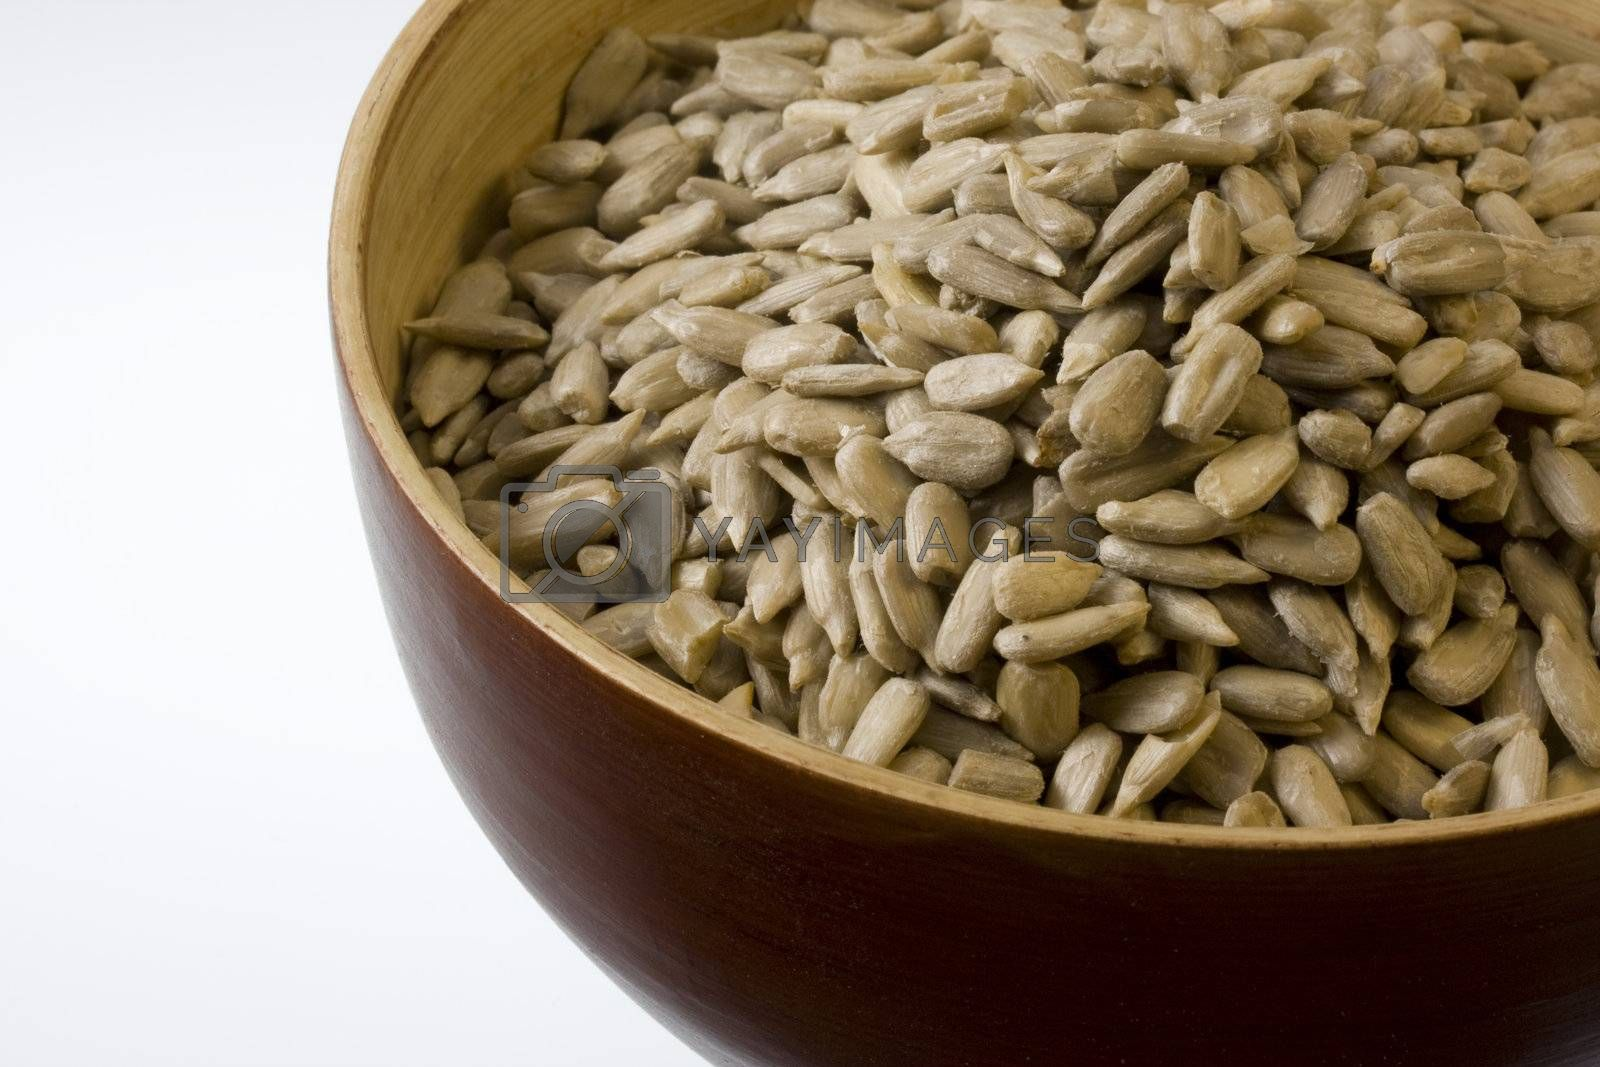 a wooden bowl of shelled sunflower seeds against white background, copy space